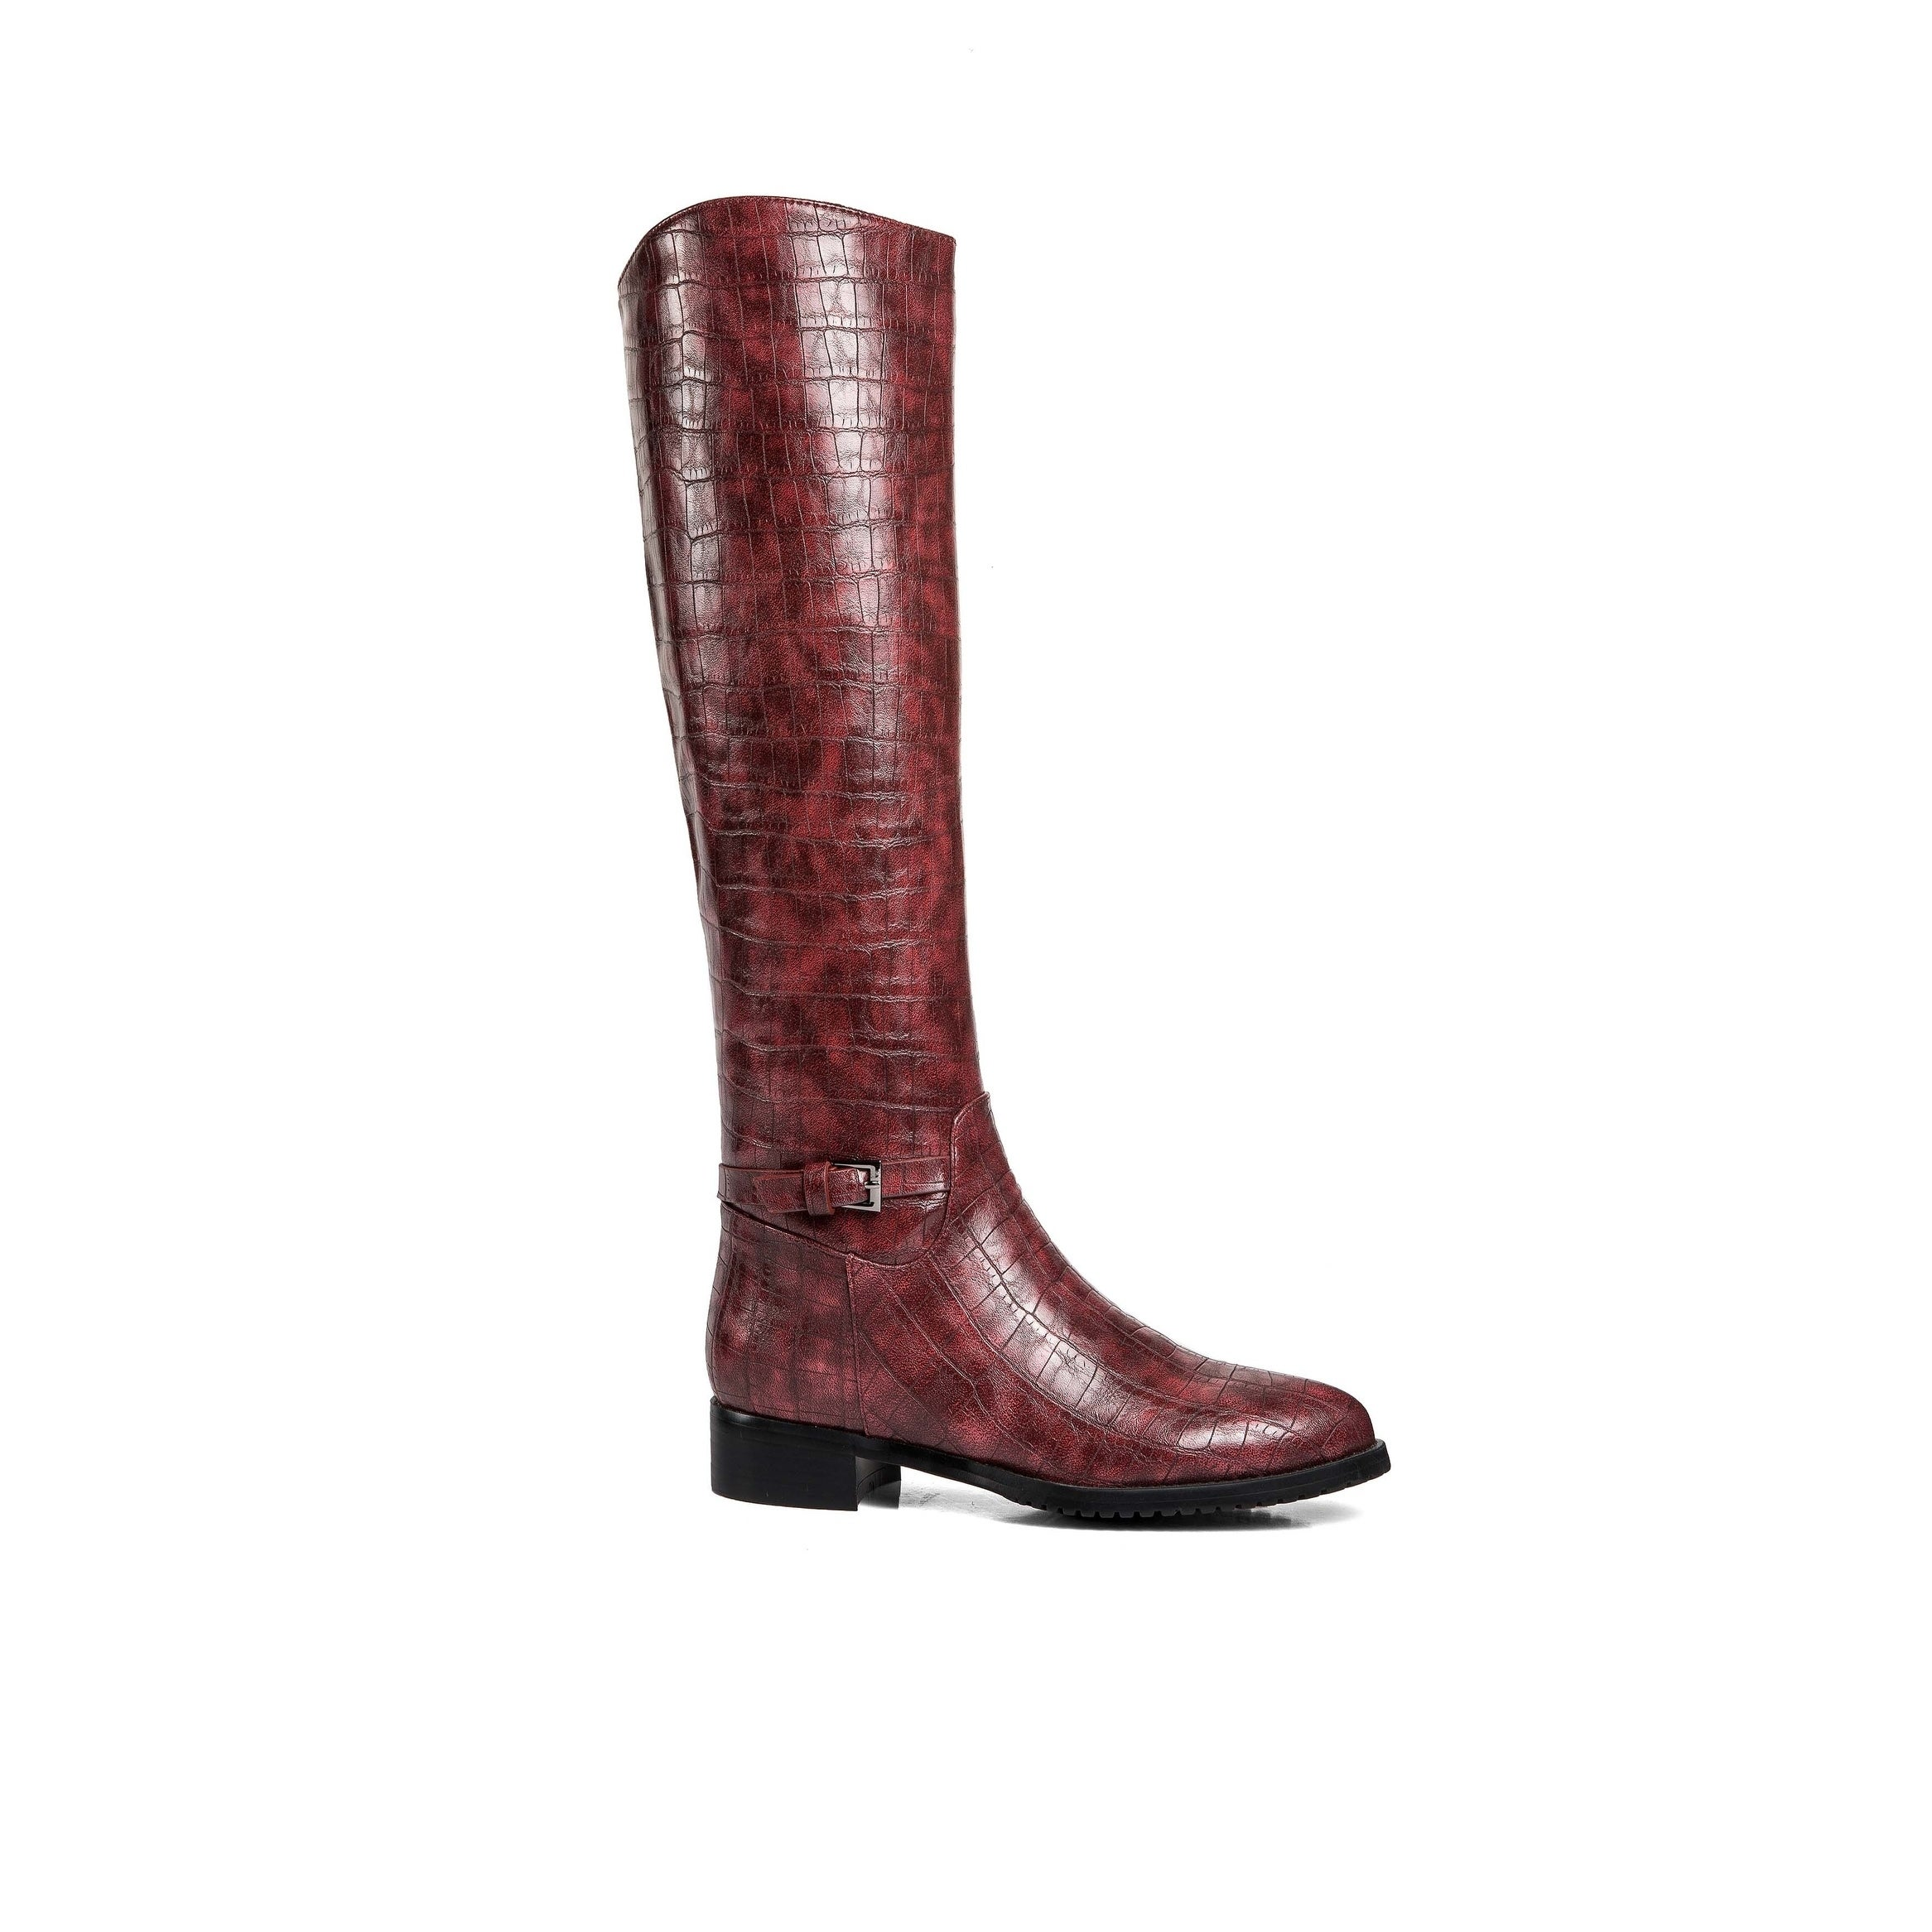 ea3c2baff9f Ann Creek Women s  Weenen  Croc-Print Riding Boots